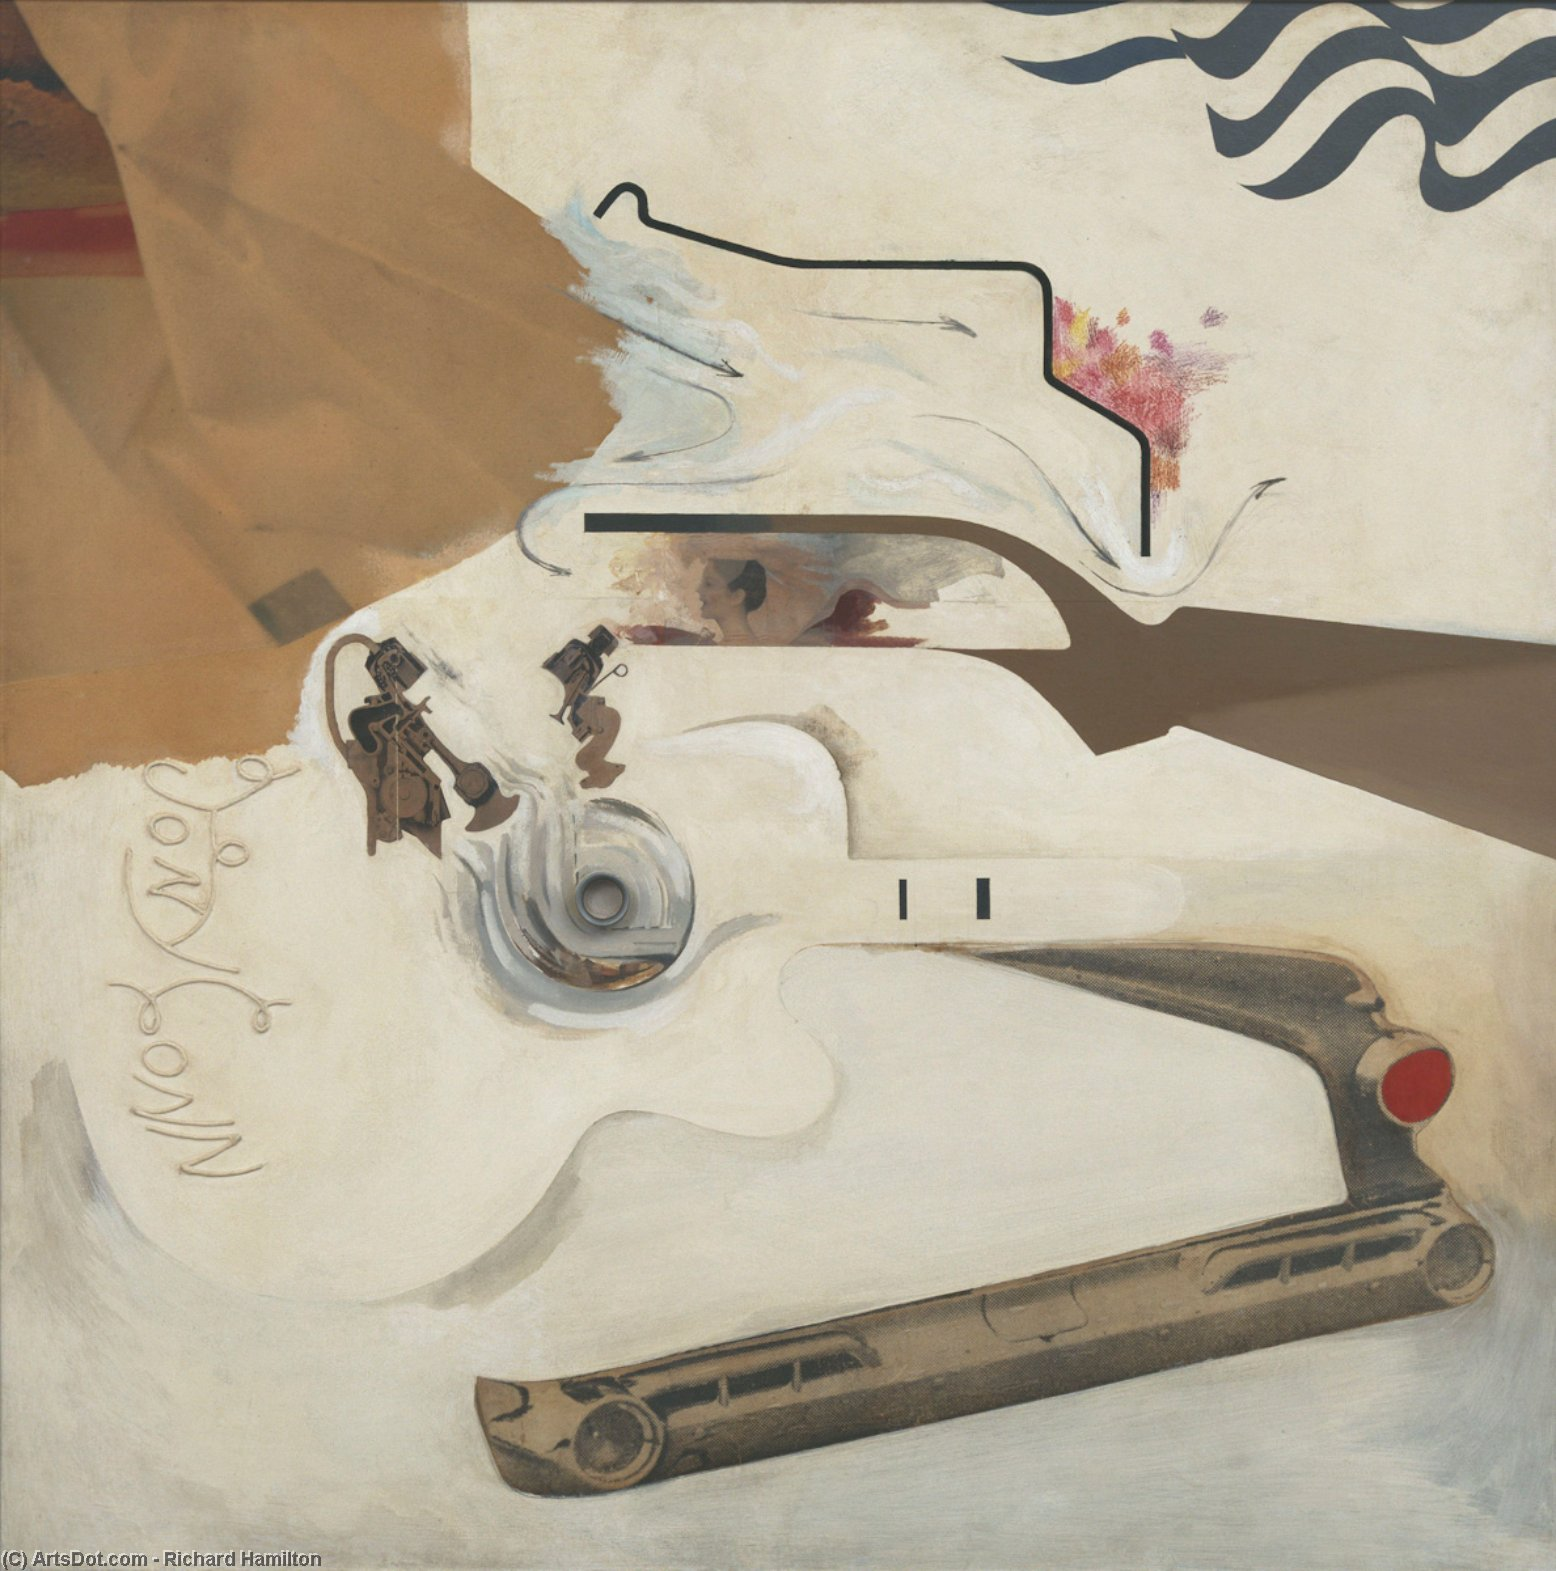 Wikioo.org - The Encyclopedia of Fine Arts - Painting, Artwork by Richard Hamilton - Glorious Techniculture